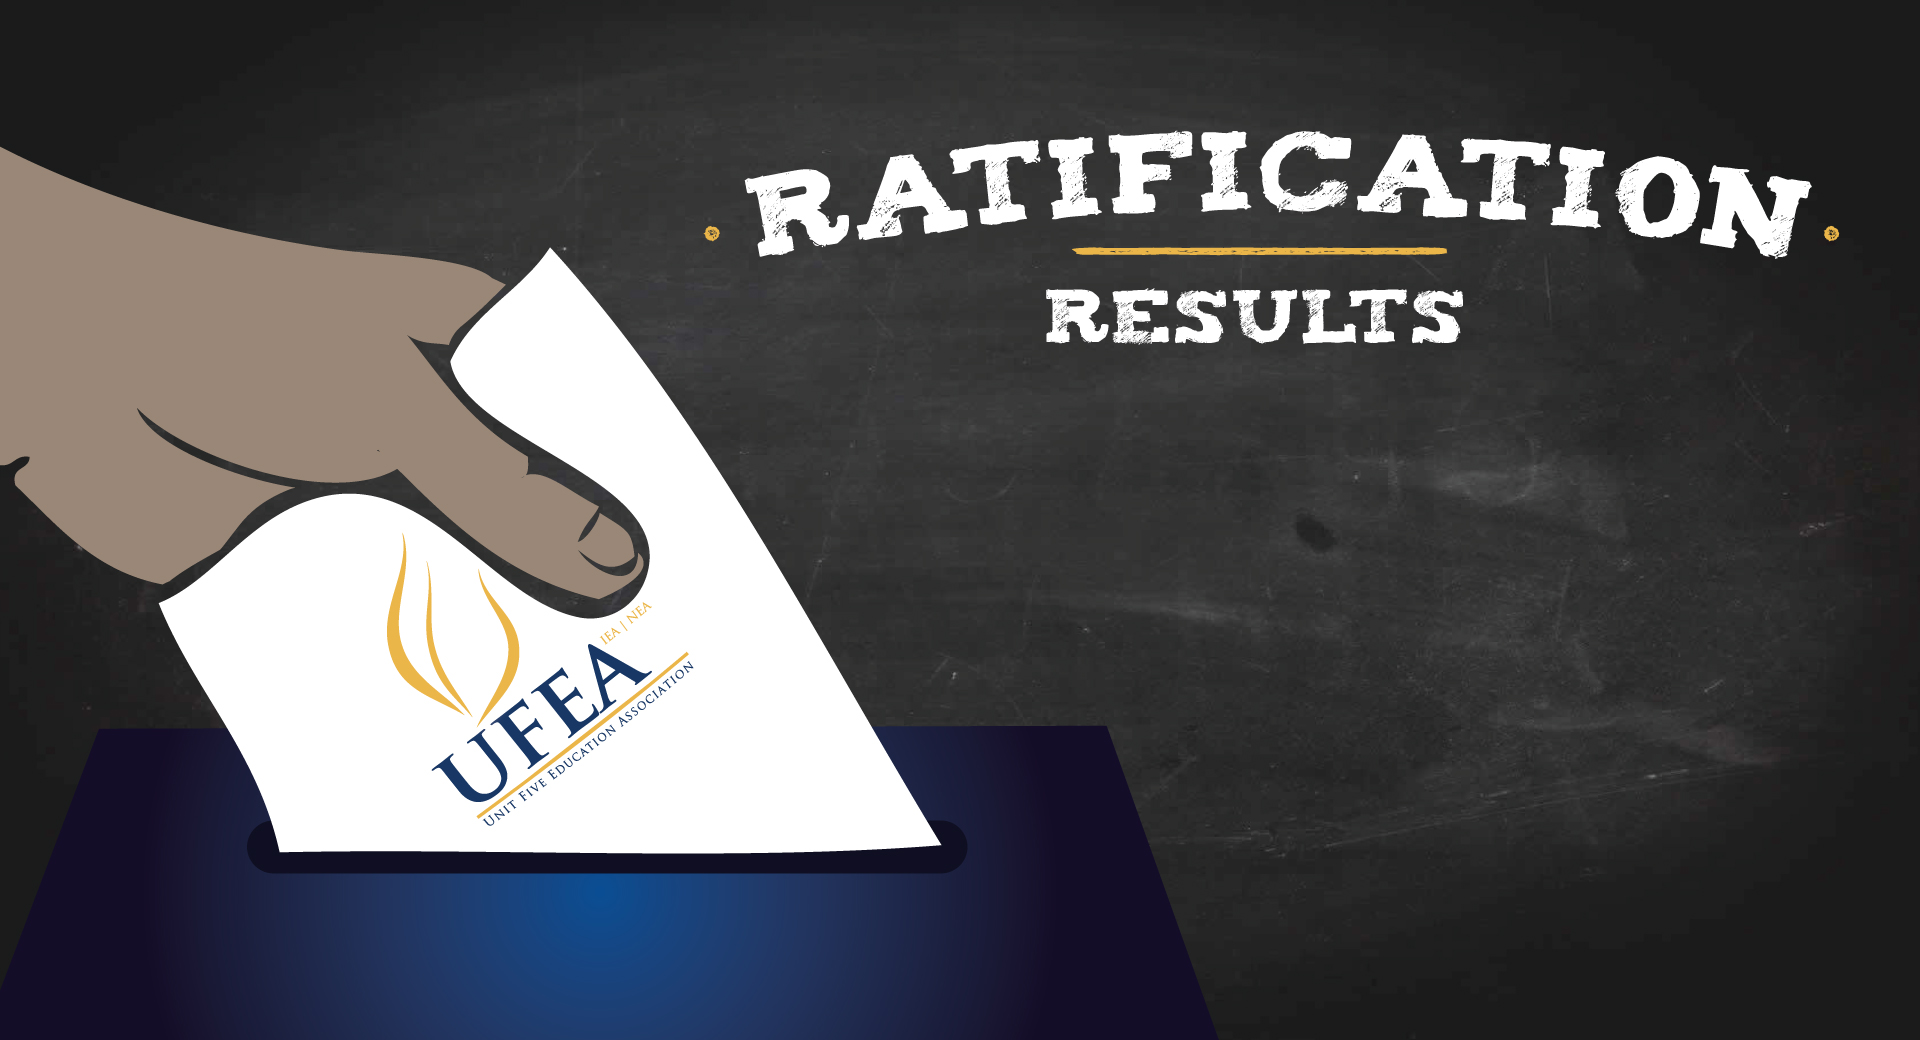 RATIFICATION RESULTS